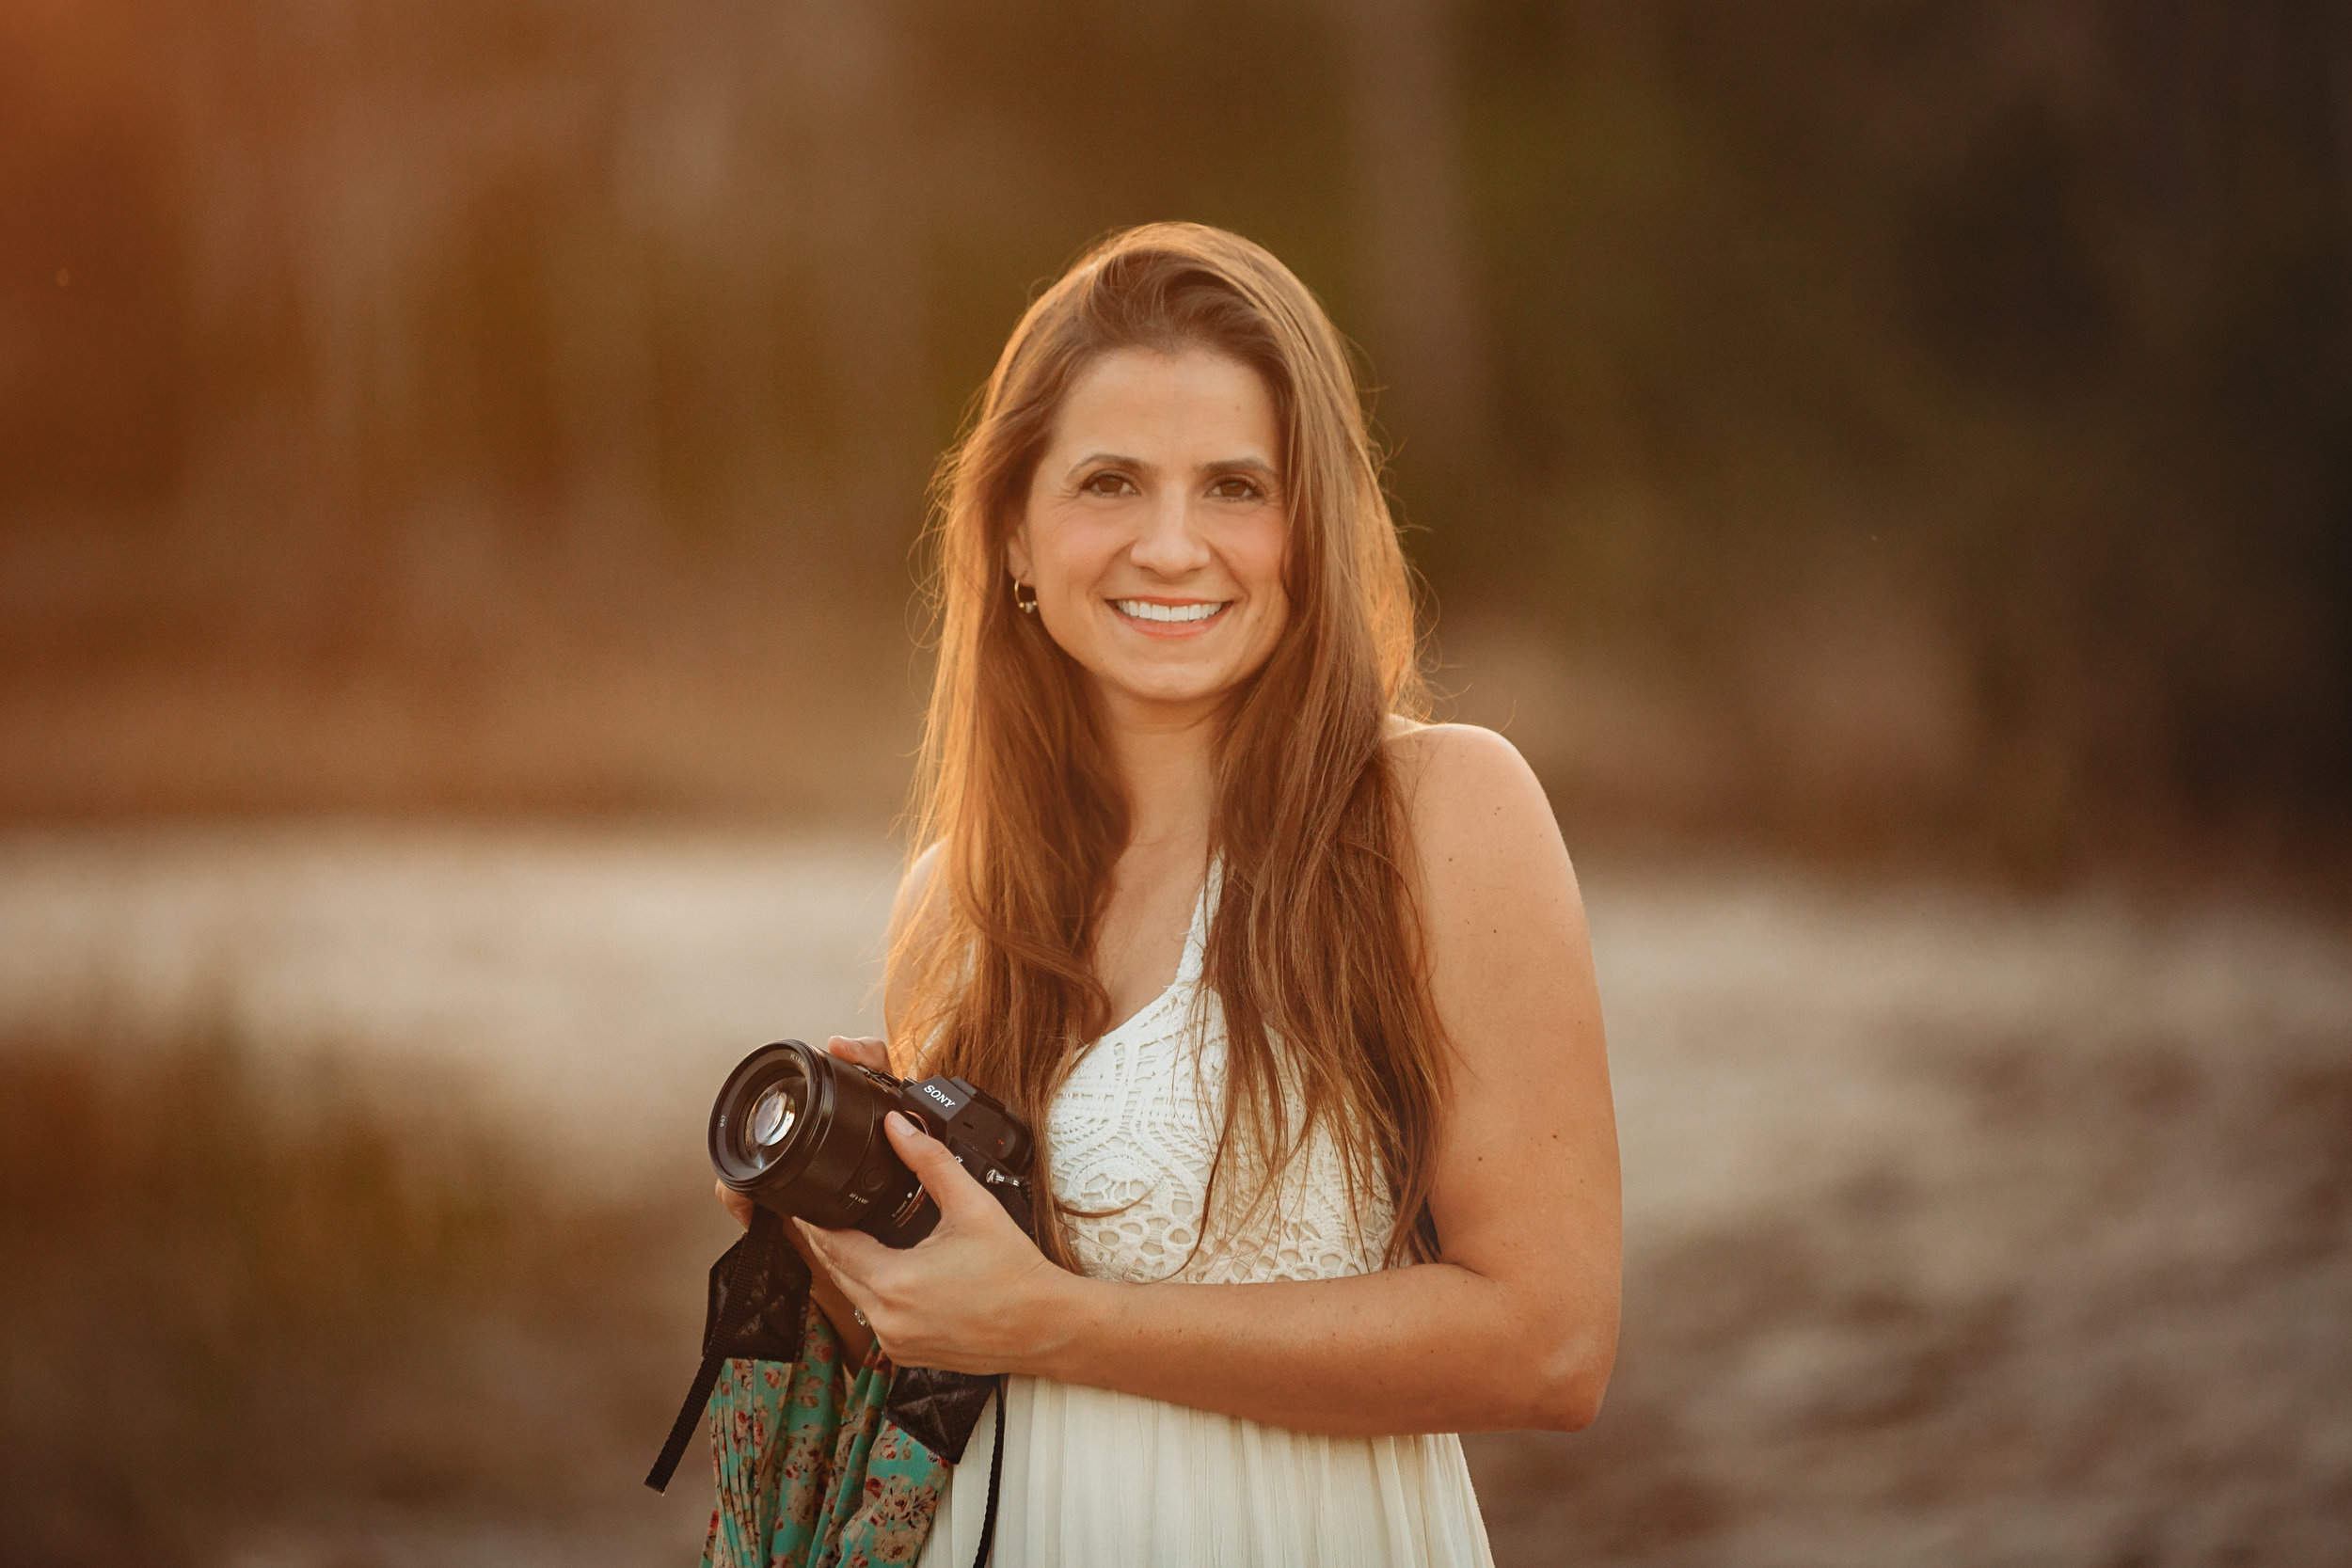 Welcome! - Hi there! Thank you so much for stopping by! I'm Stephanie. I'm a family, maternity, newborn, and wedding photographer in Jupiter, Florida. I service Palm Beach county and surrounding areas. I would love to capture beautiful memories for your family!